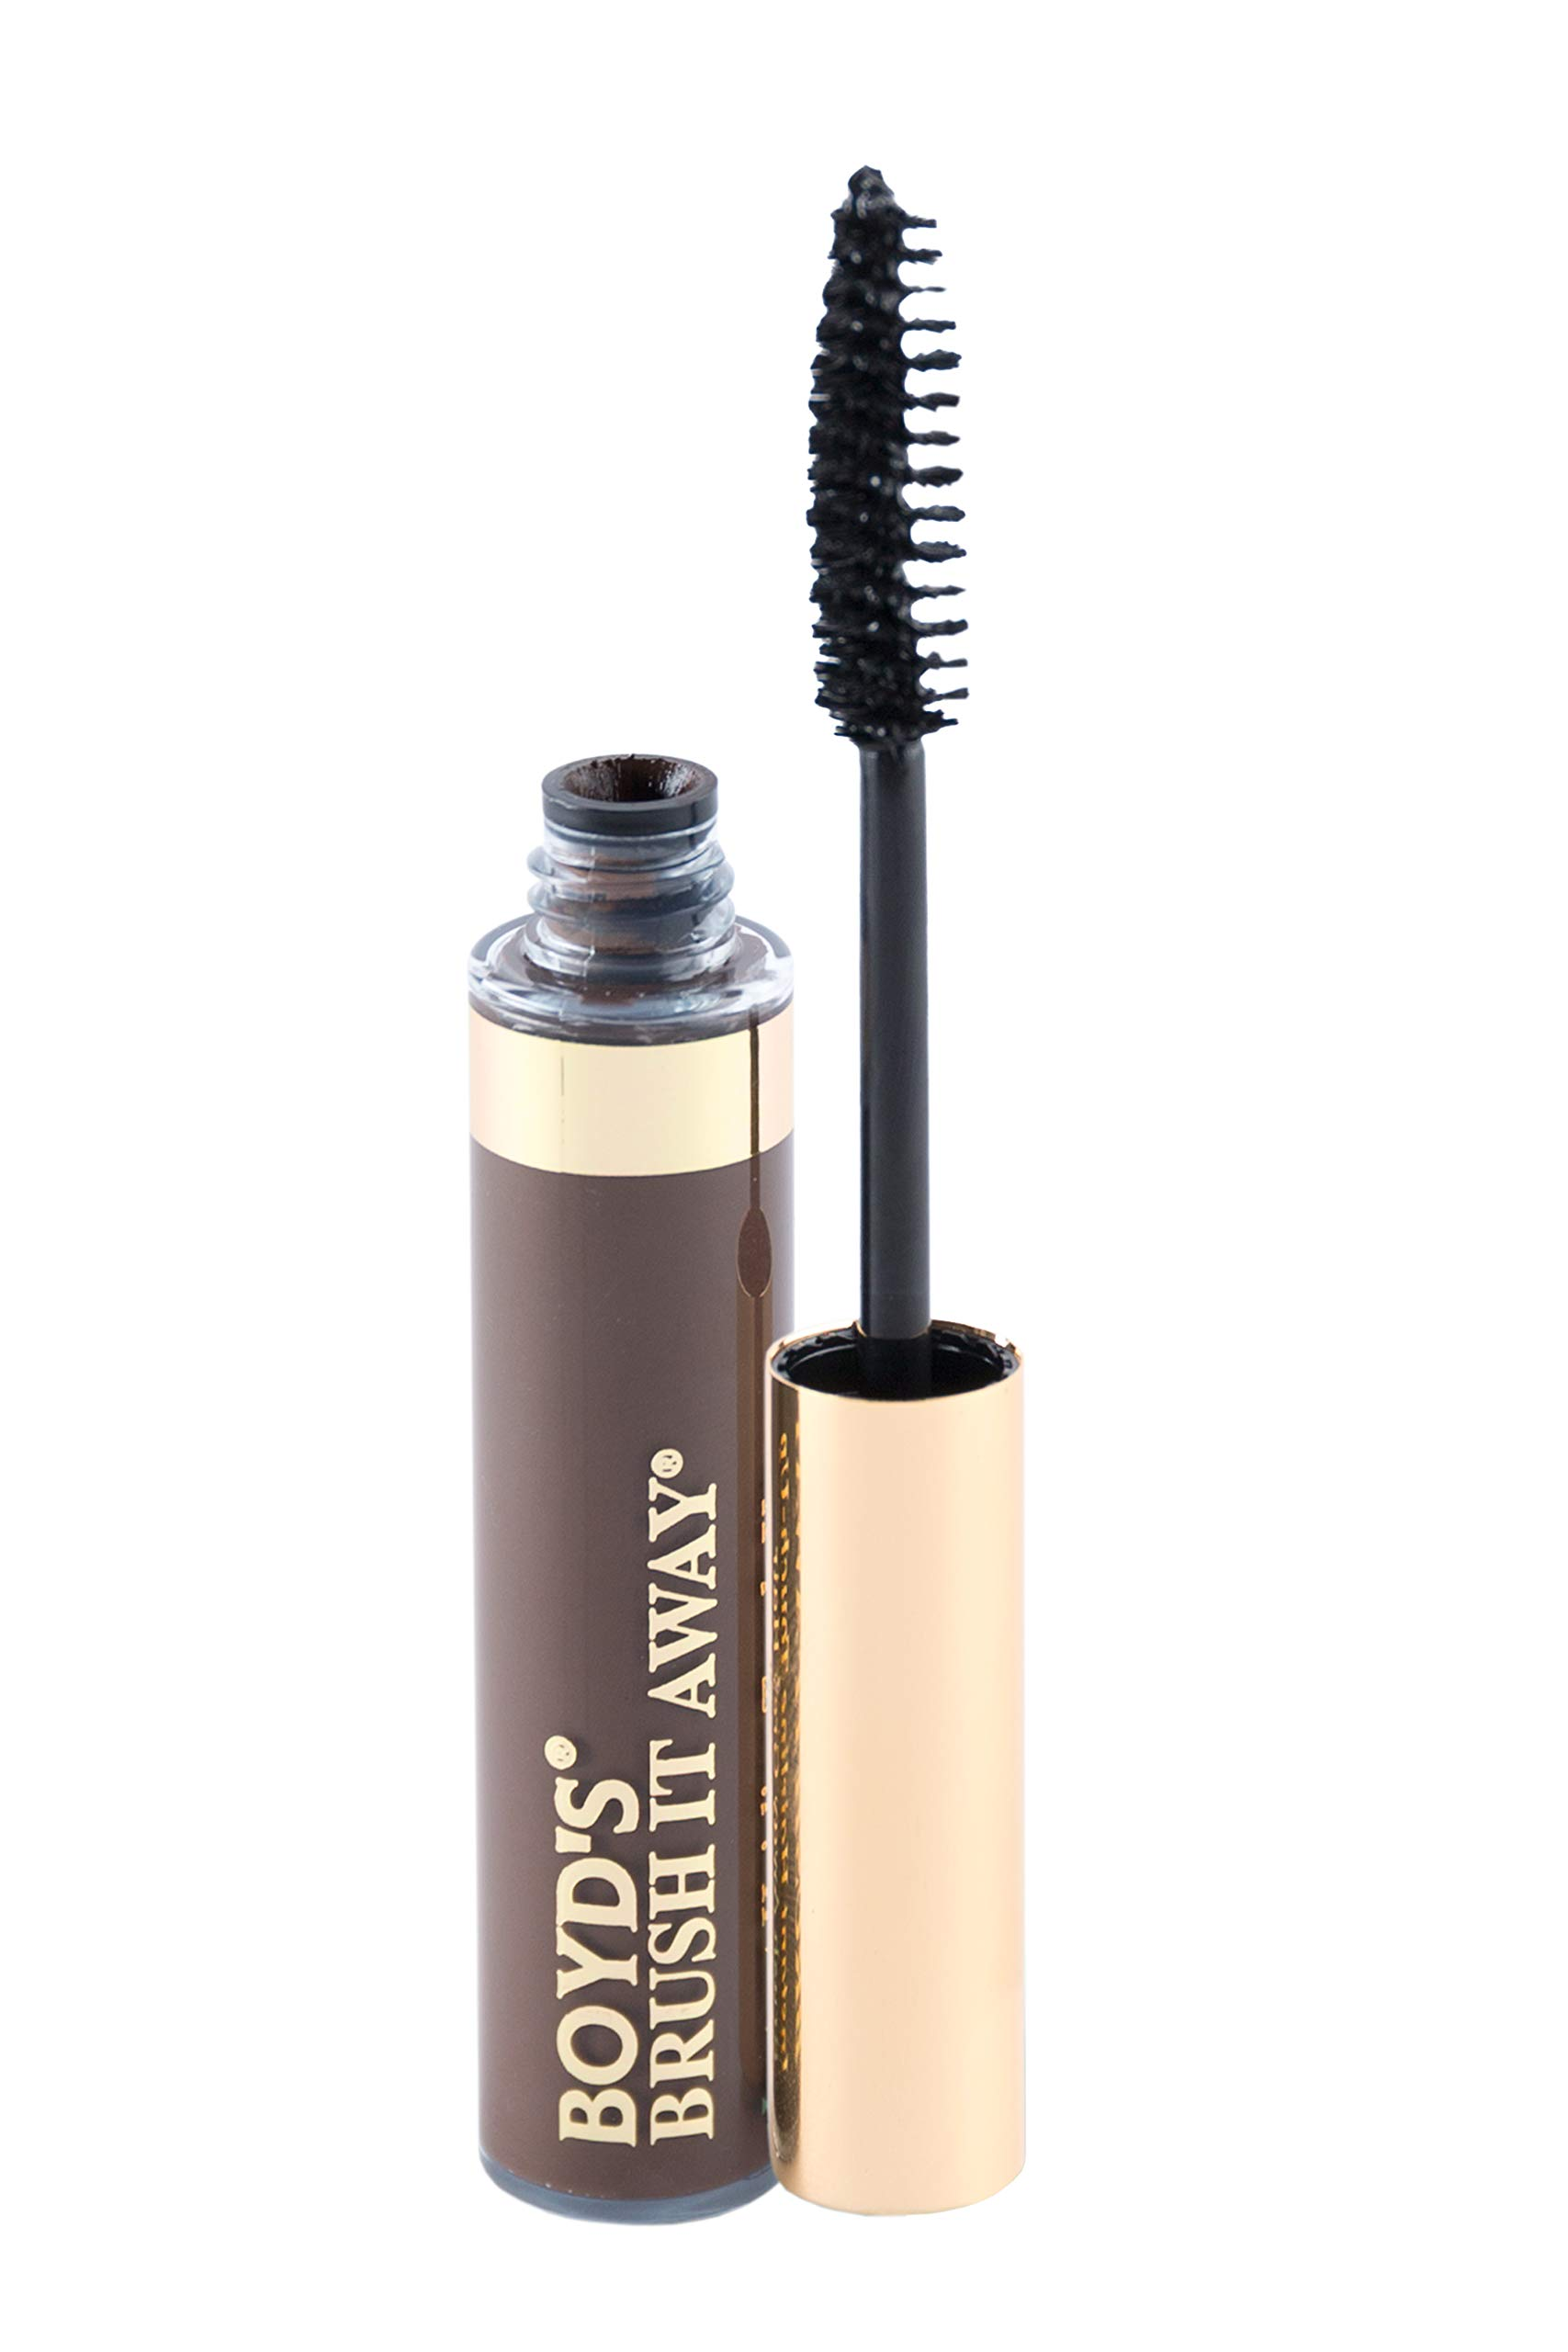 Boyd's Brush It Away Hair Mascara and Root Touch Up (Medium Brown) by BOYD'S MADISON AVENUE